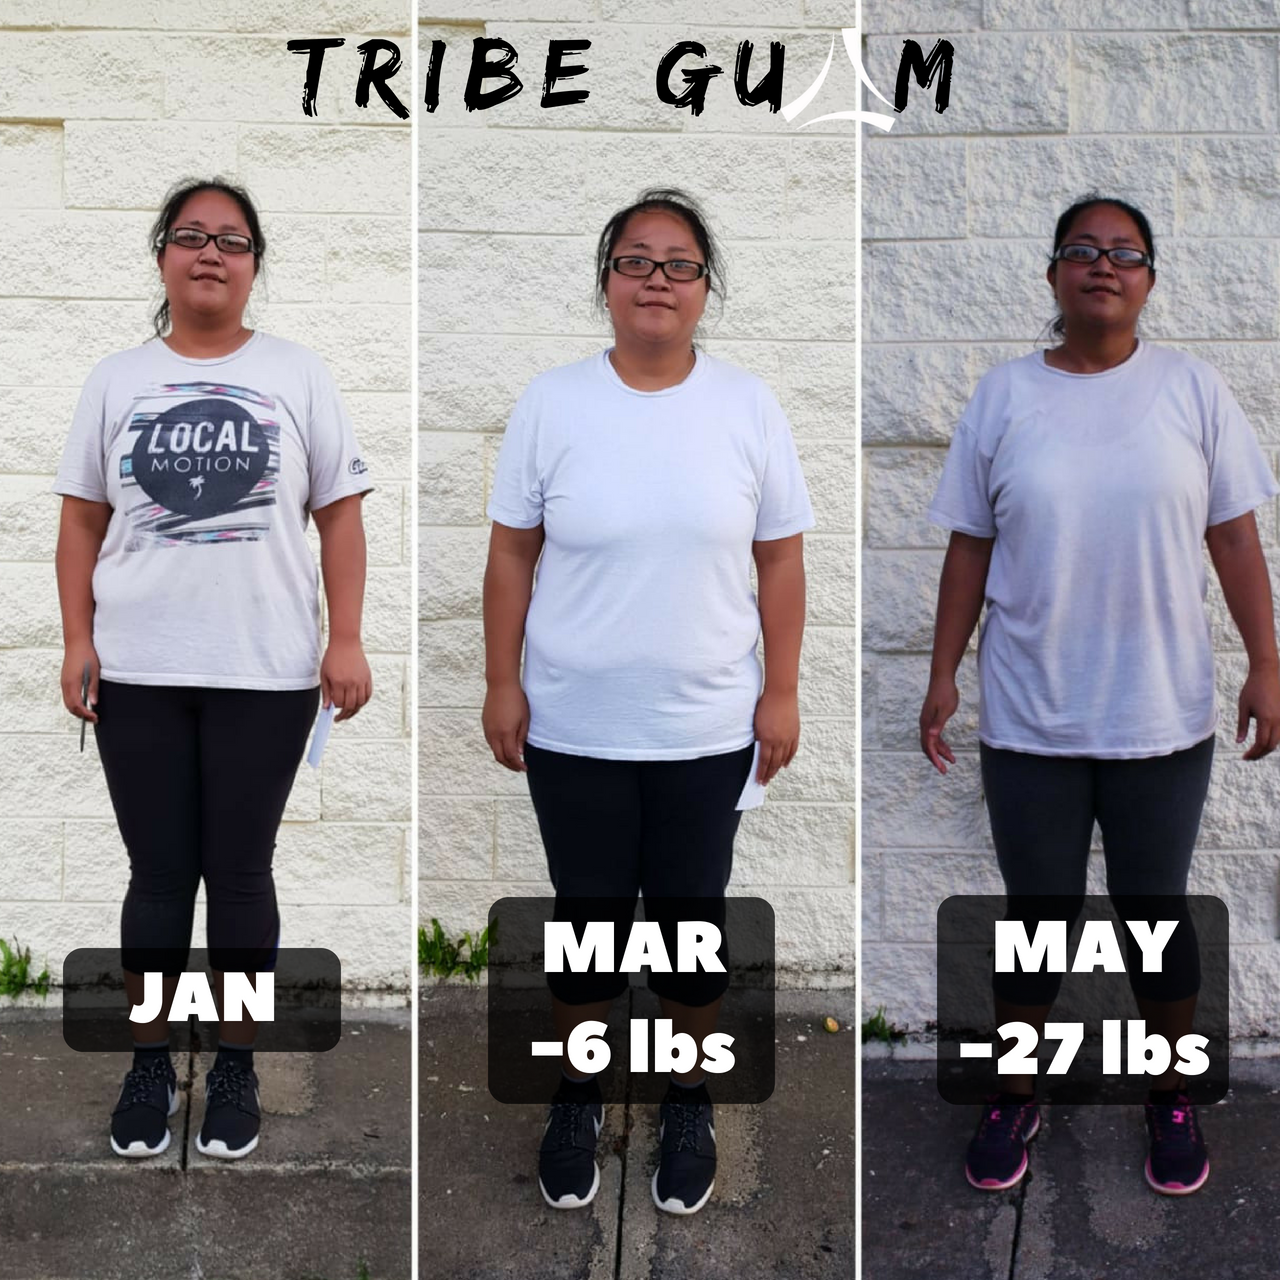 "Jona Madarang   ""This journey all started when I won a free 8 week fitcamp with coach Jason I really didn't know what to expect I wasn't physically active and was always over 200lbs since high school. My 1st camp I struggle with the meal plan I gave into those cravings and was only going to class twice a week but after seeing a fellow tribe sister drop her weight it really motivated & opened my eyes that consistency was the key. On my 2nd camp I stuck to the meal plan ,intermittent fasting & being consistent on coming to class  Without the love , support , & encouragement from my fellow tribe sisters & brothers I wouldn't be able to achieve my goal"""